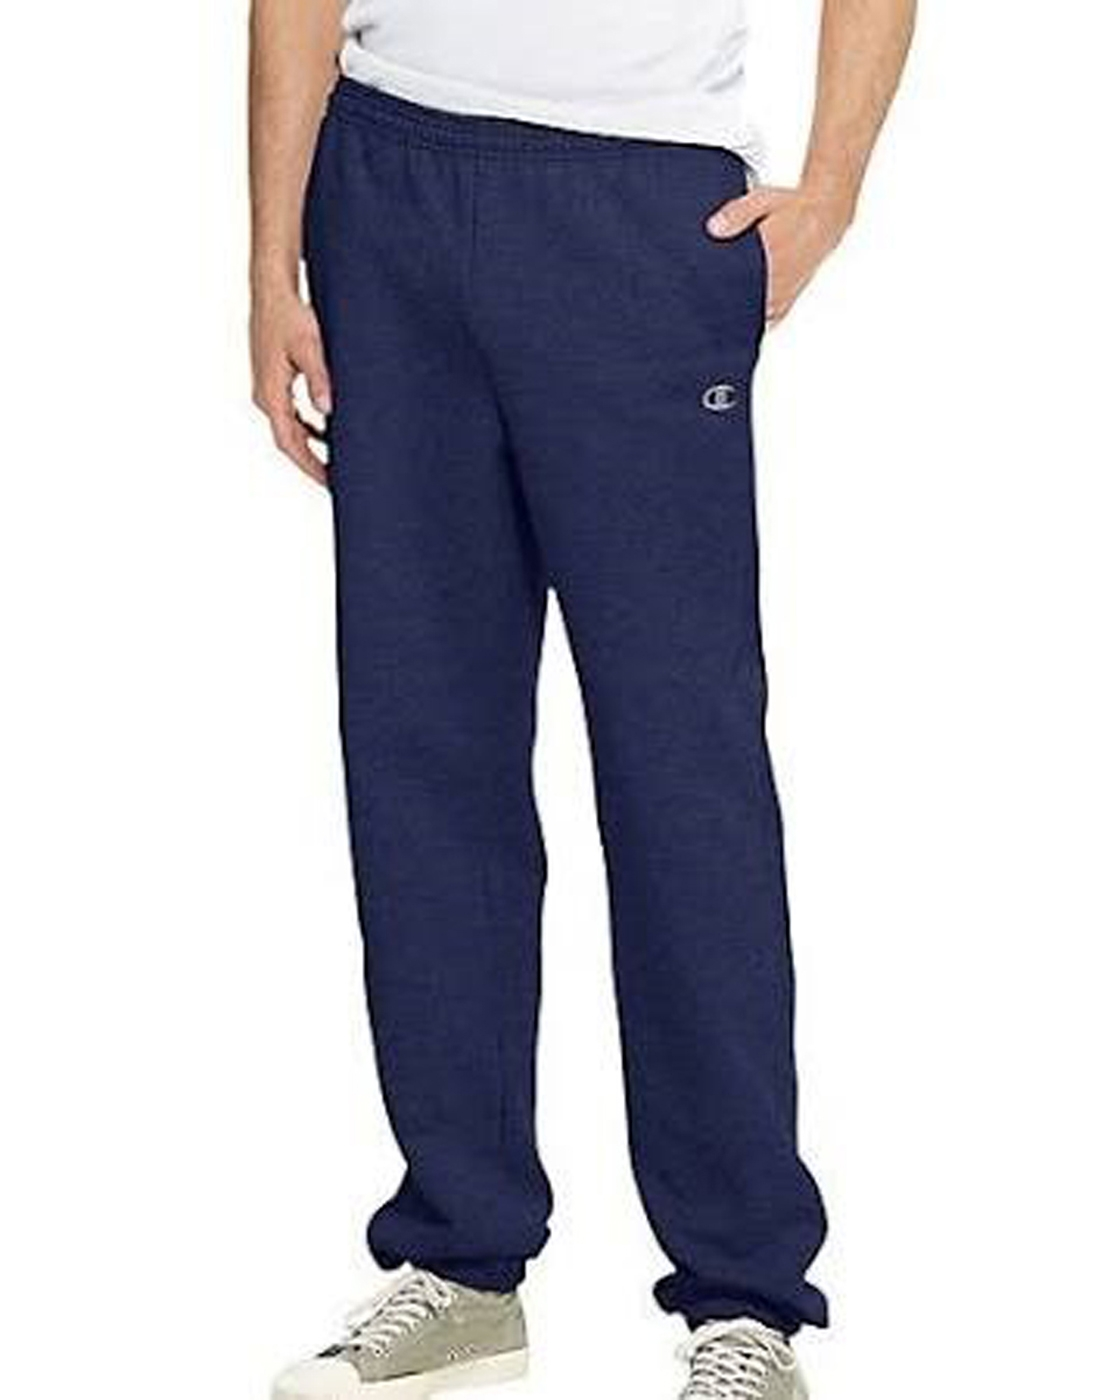 Champion Men's Elastic Hem Eco Fleece Sweatpant - Large - Navy - 70082 - Basketball Basketballs Balls Color Rubber Basketballs 70082